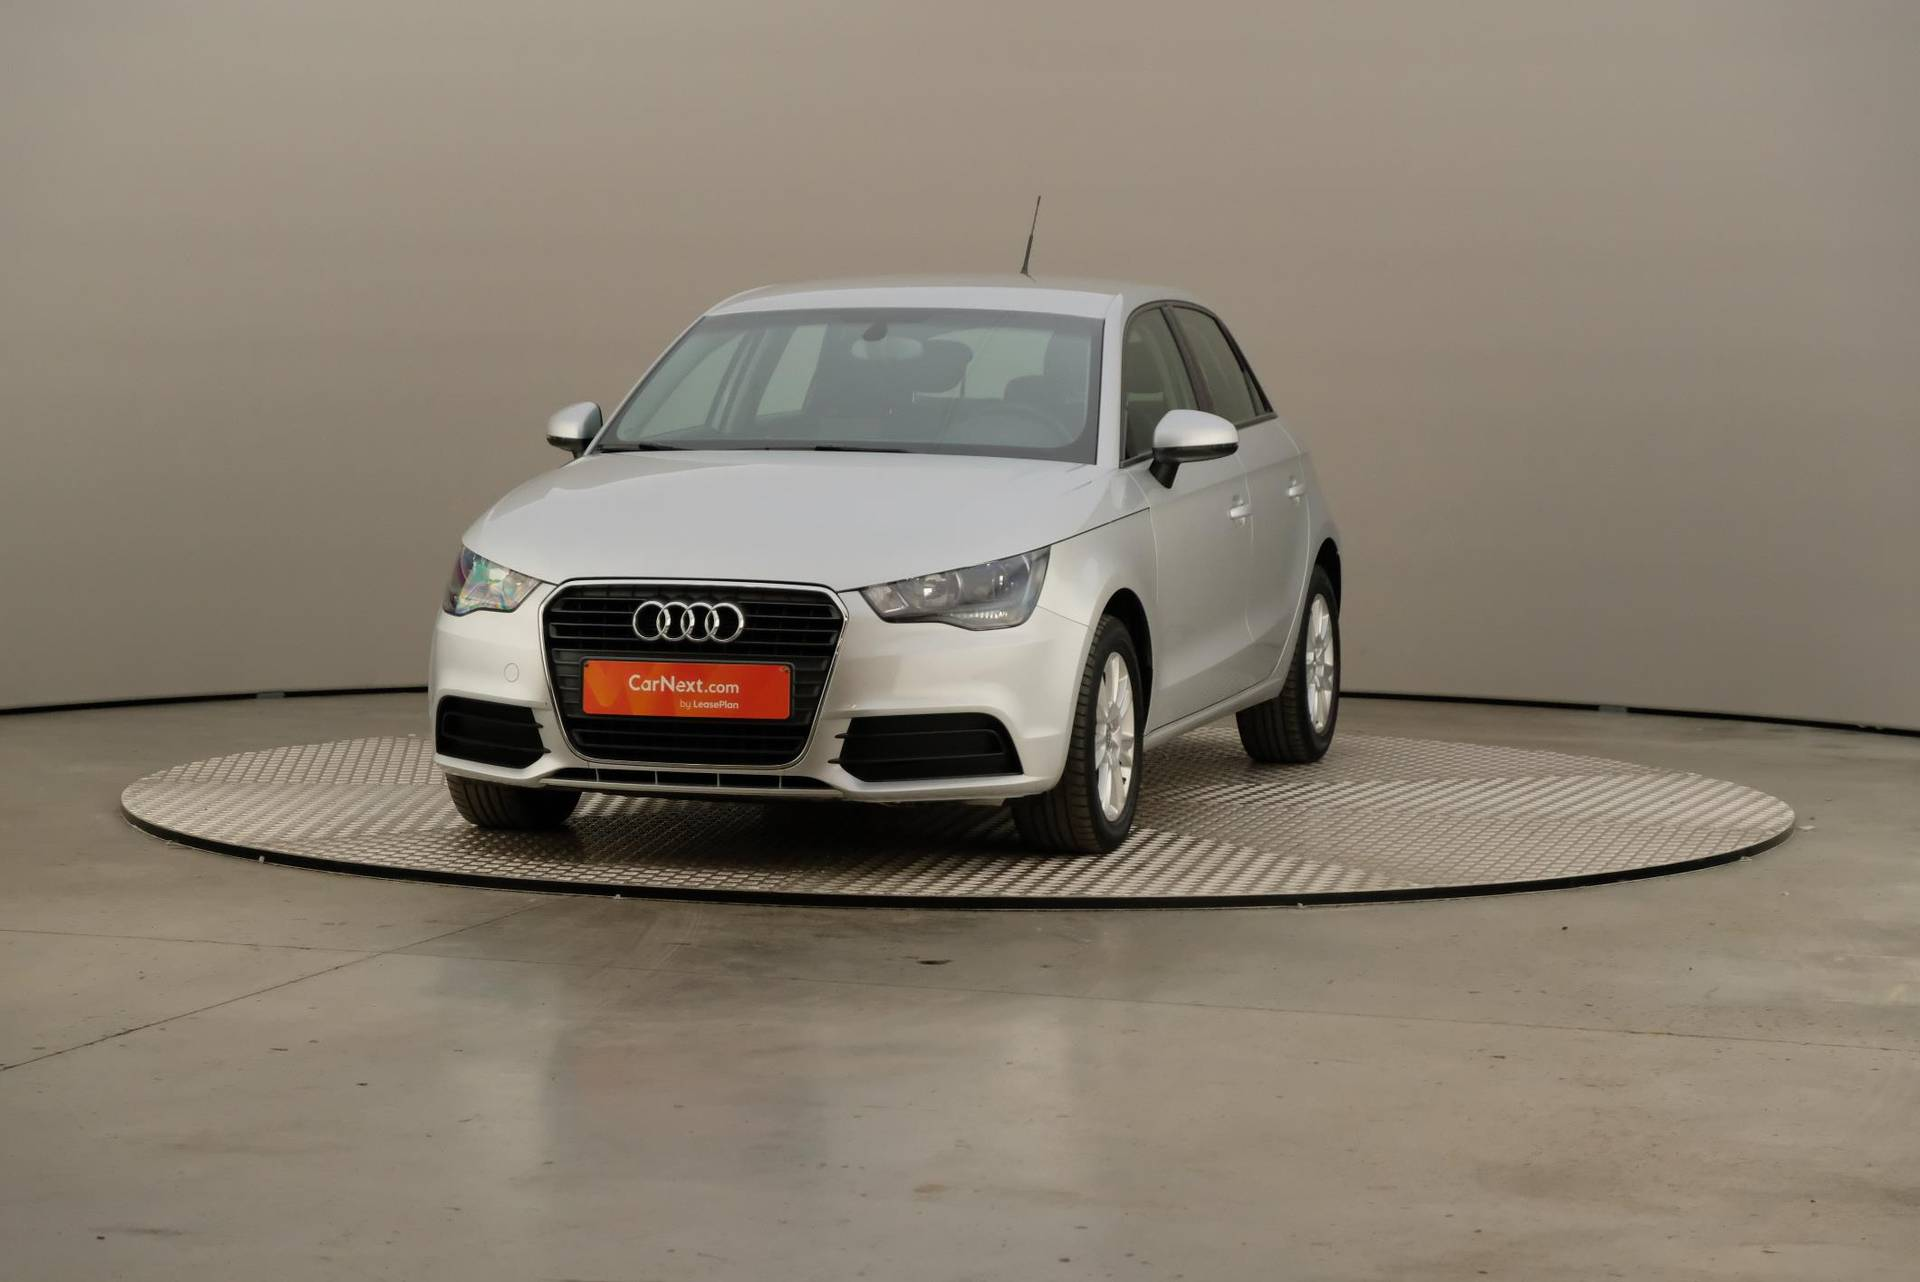 Audi A1 1.6 TDI Sportback, Attraction S&S PDC BT, 360-image33